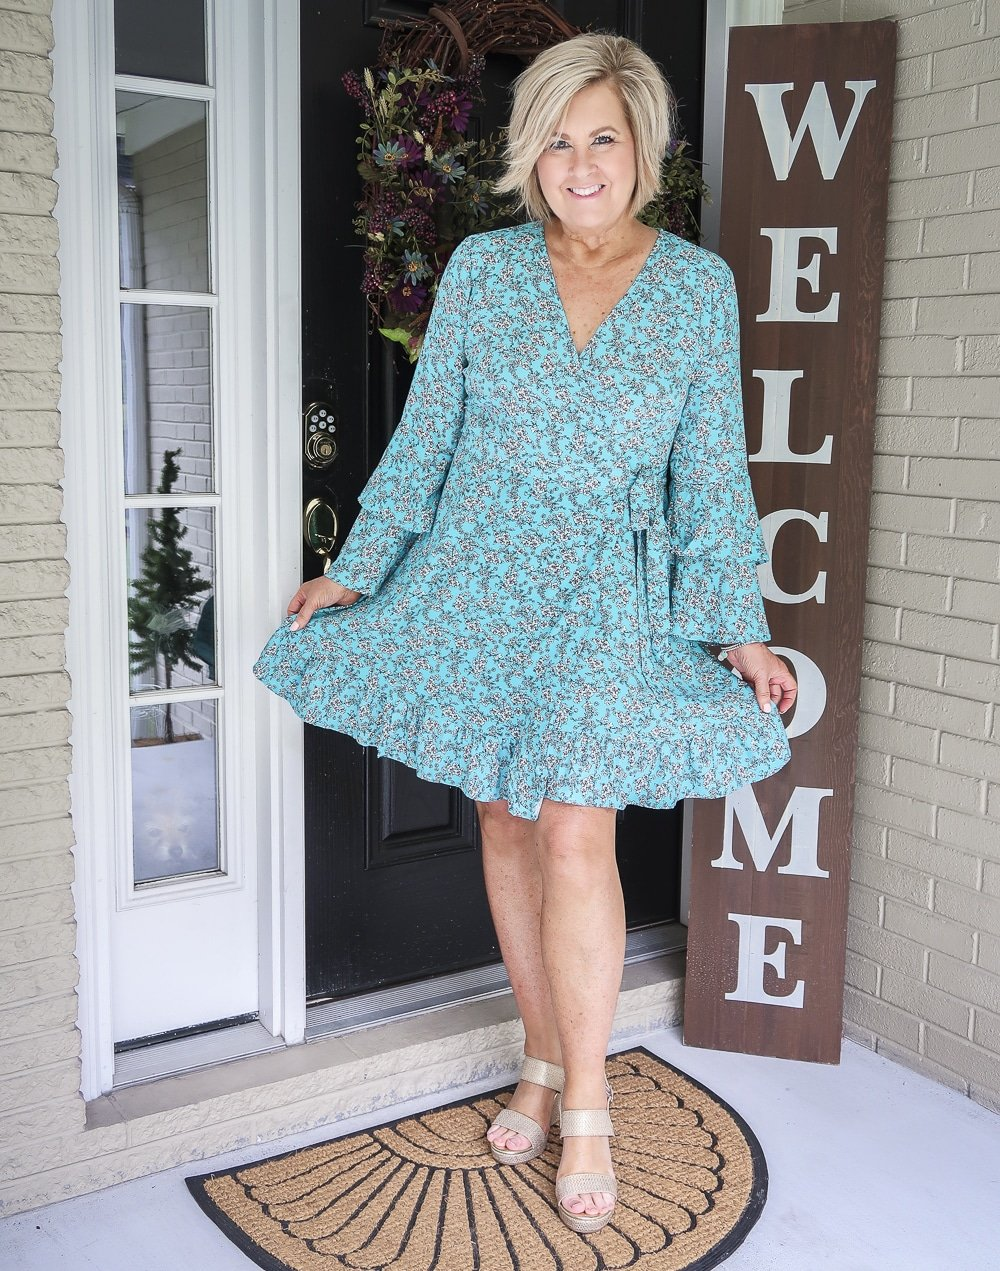 Fashion Blogger 50 Is Not Old is wearing a beautiful summer turquoise wrap dress from Walmart